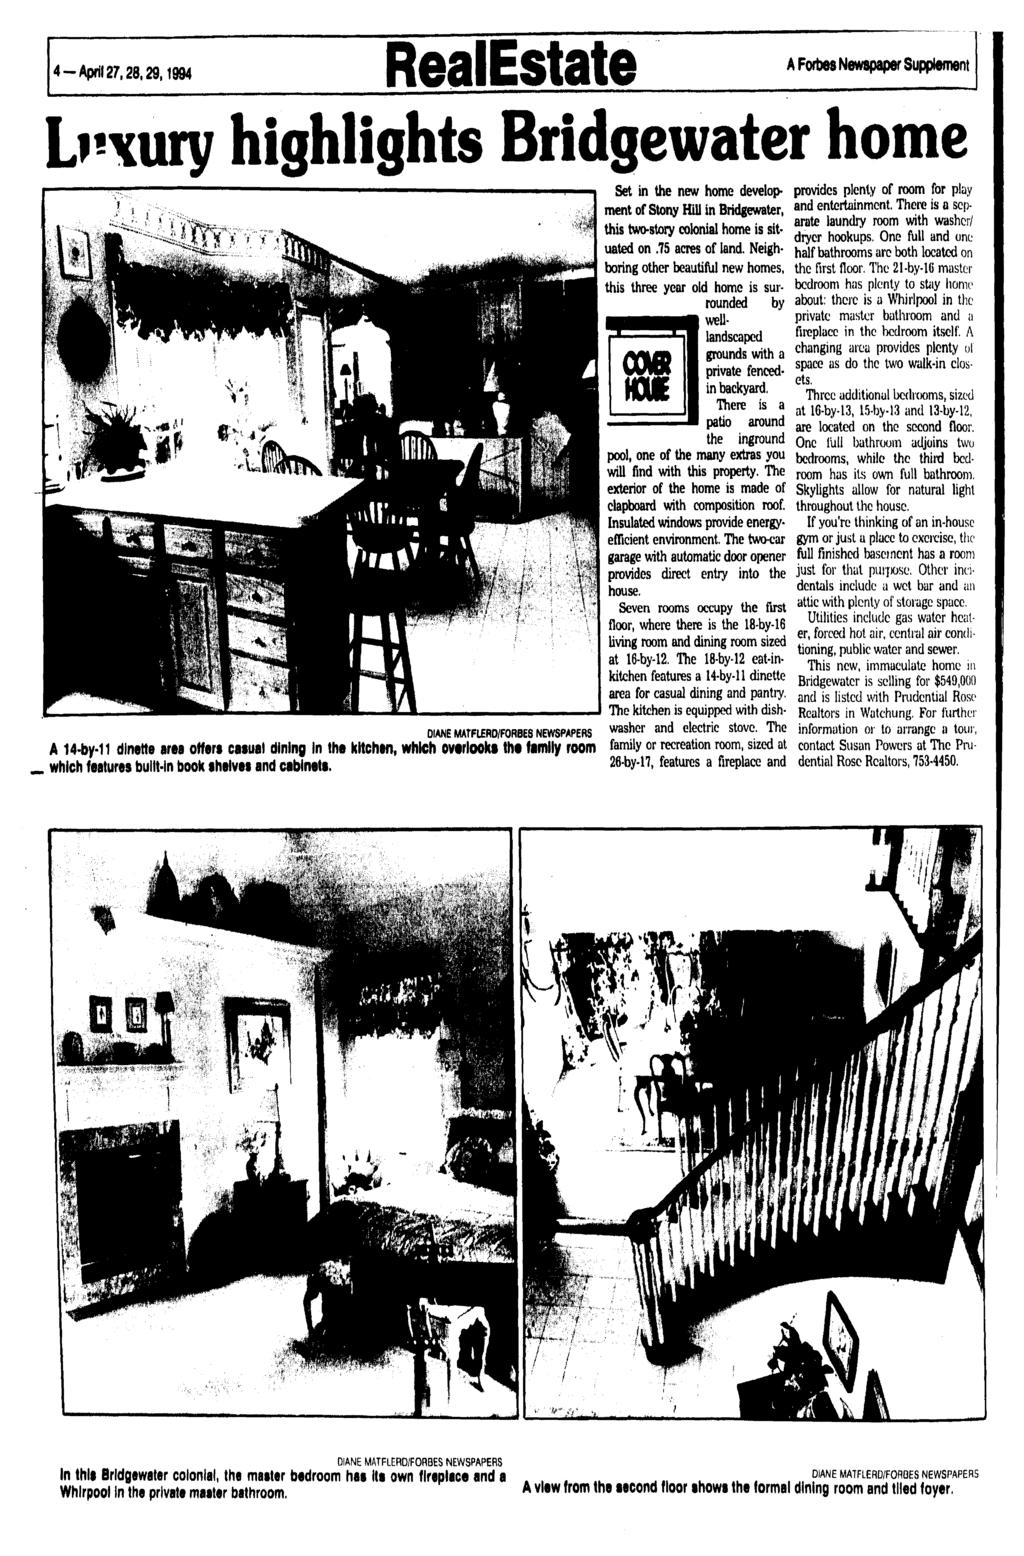 4 -April 27,28,29,1994 RealEstate A Forbes Newspaper Supplement Luxury highlights Bridgewater home DIANE MATFLERD/FORBES NEWSPAPERS Set in the new home development of Stony Hill in Bridgewater, this